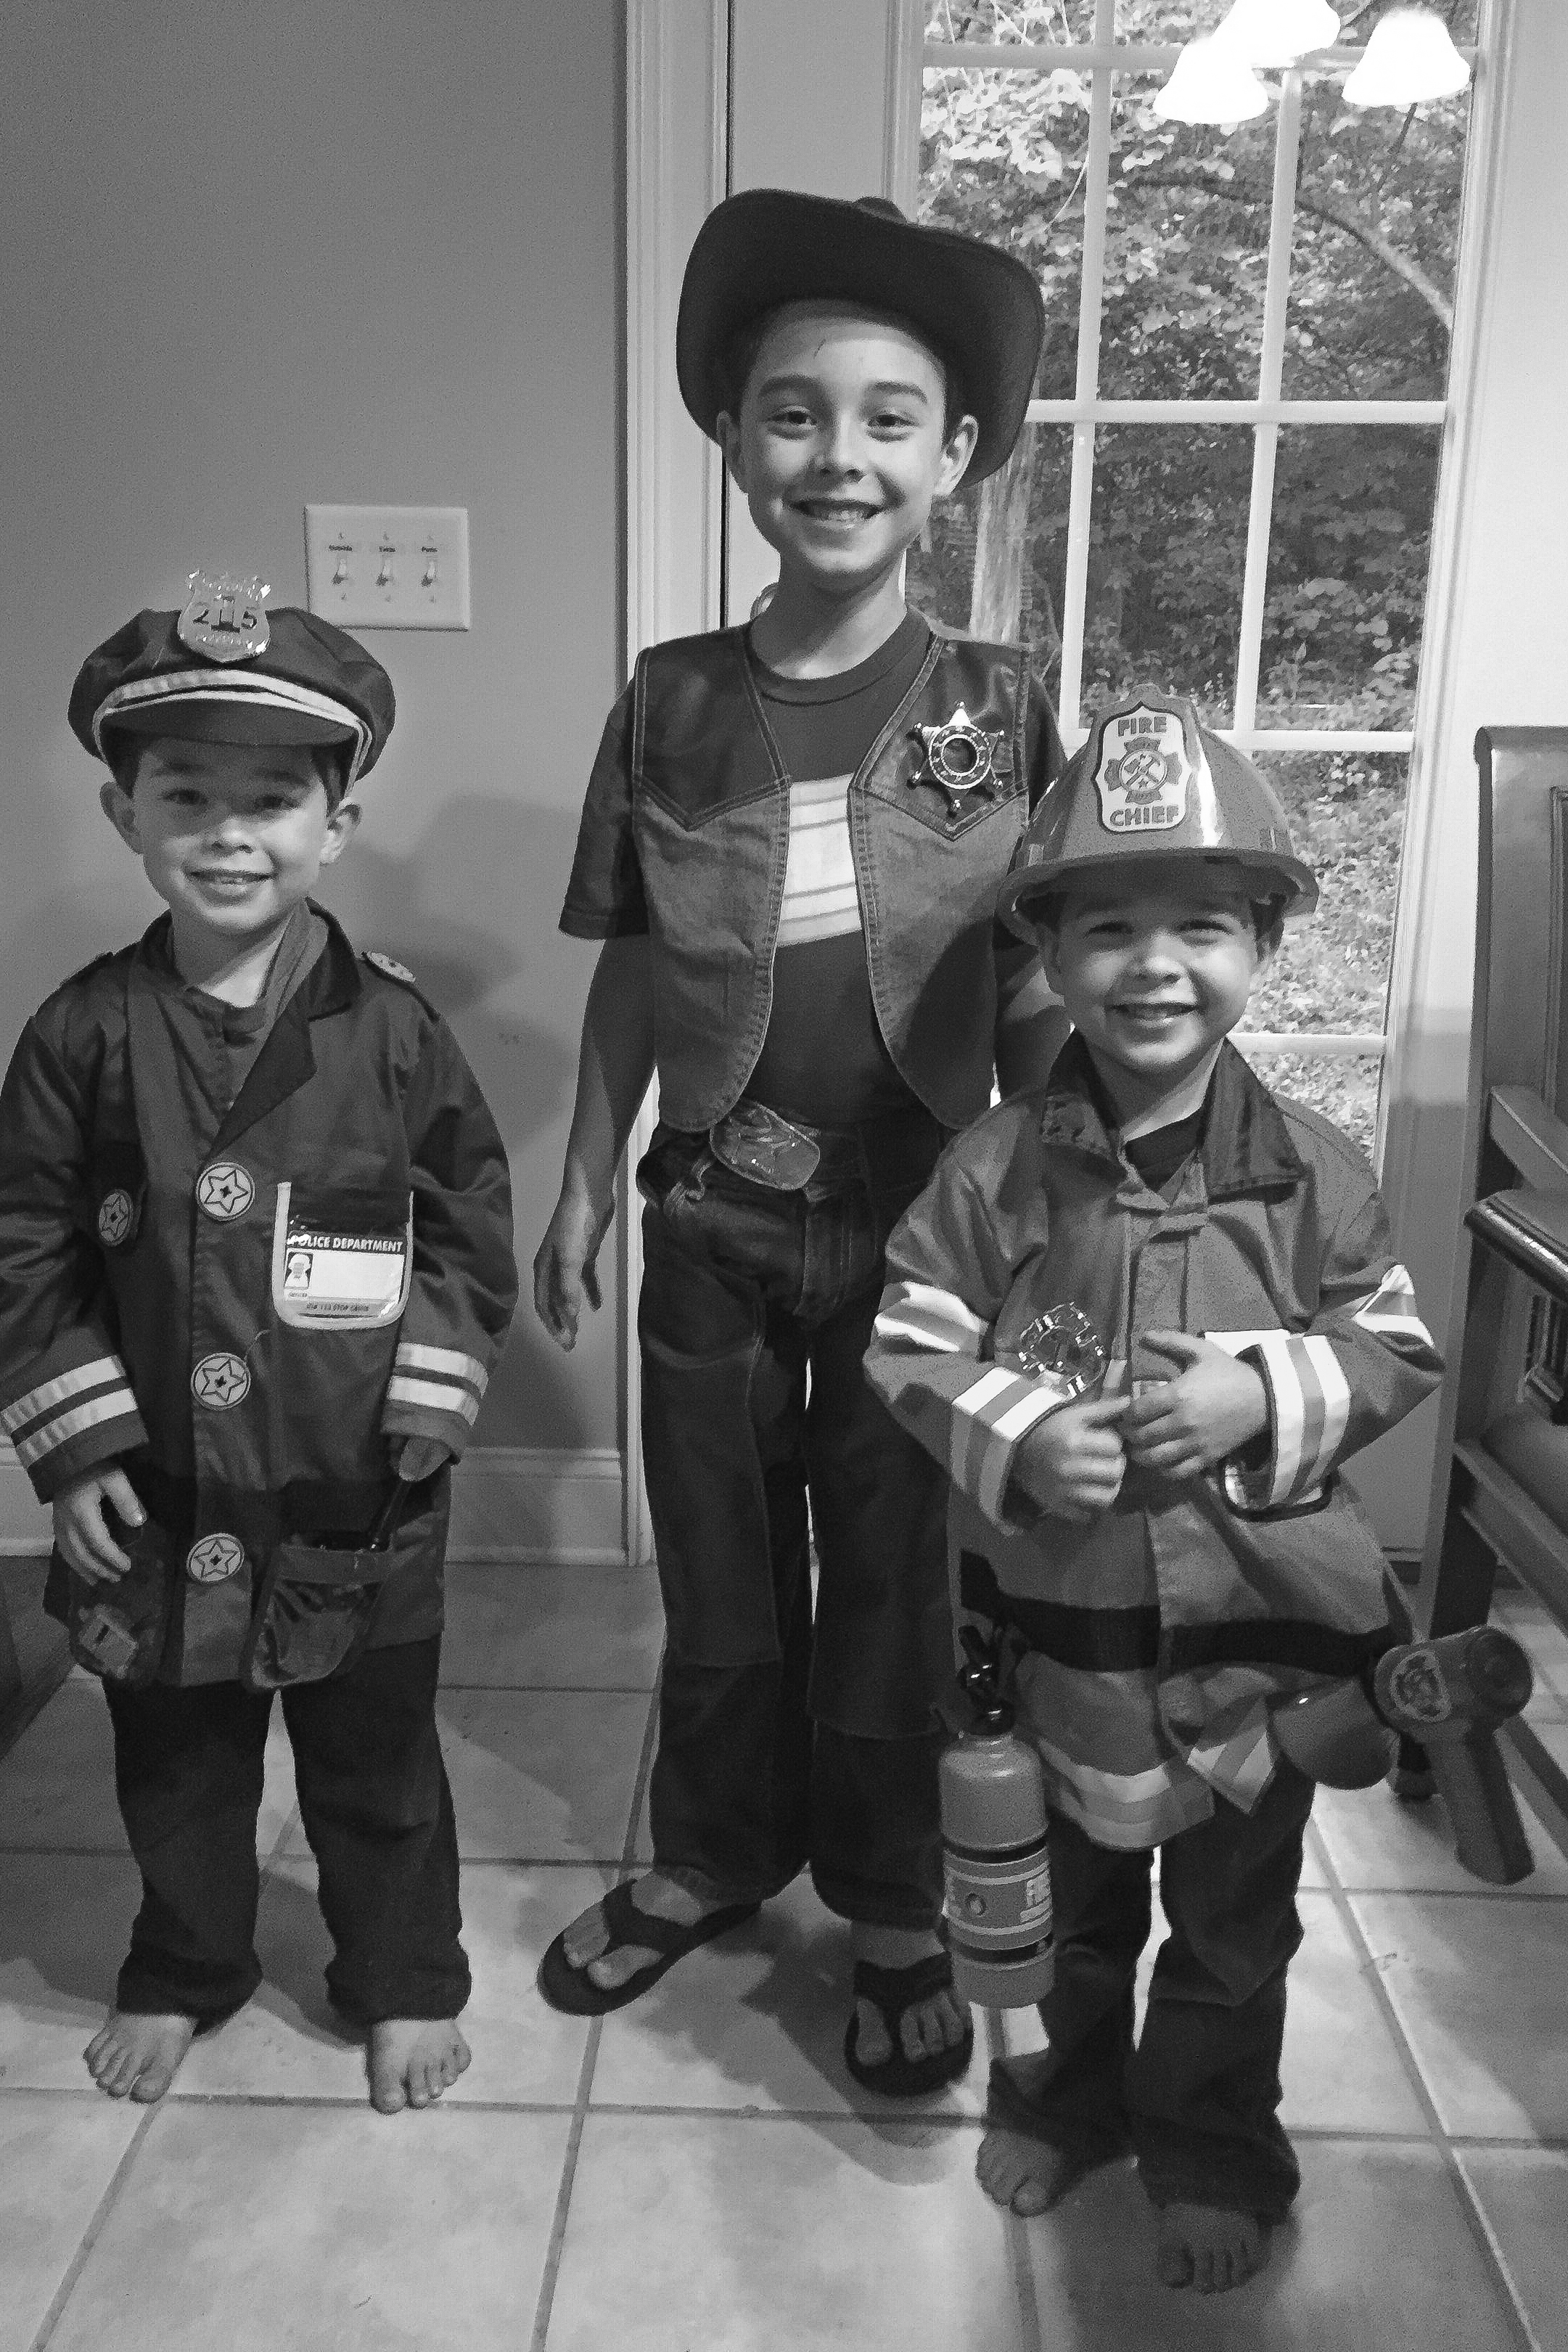 2015 - Noah (5), Abraham (7), and Daniel (3) are excited to use the new fireman, police, and cowboy outfits they bought with their own chore money.